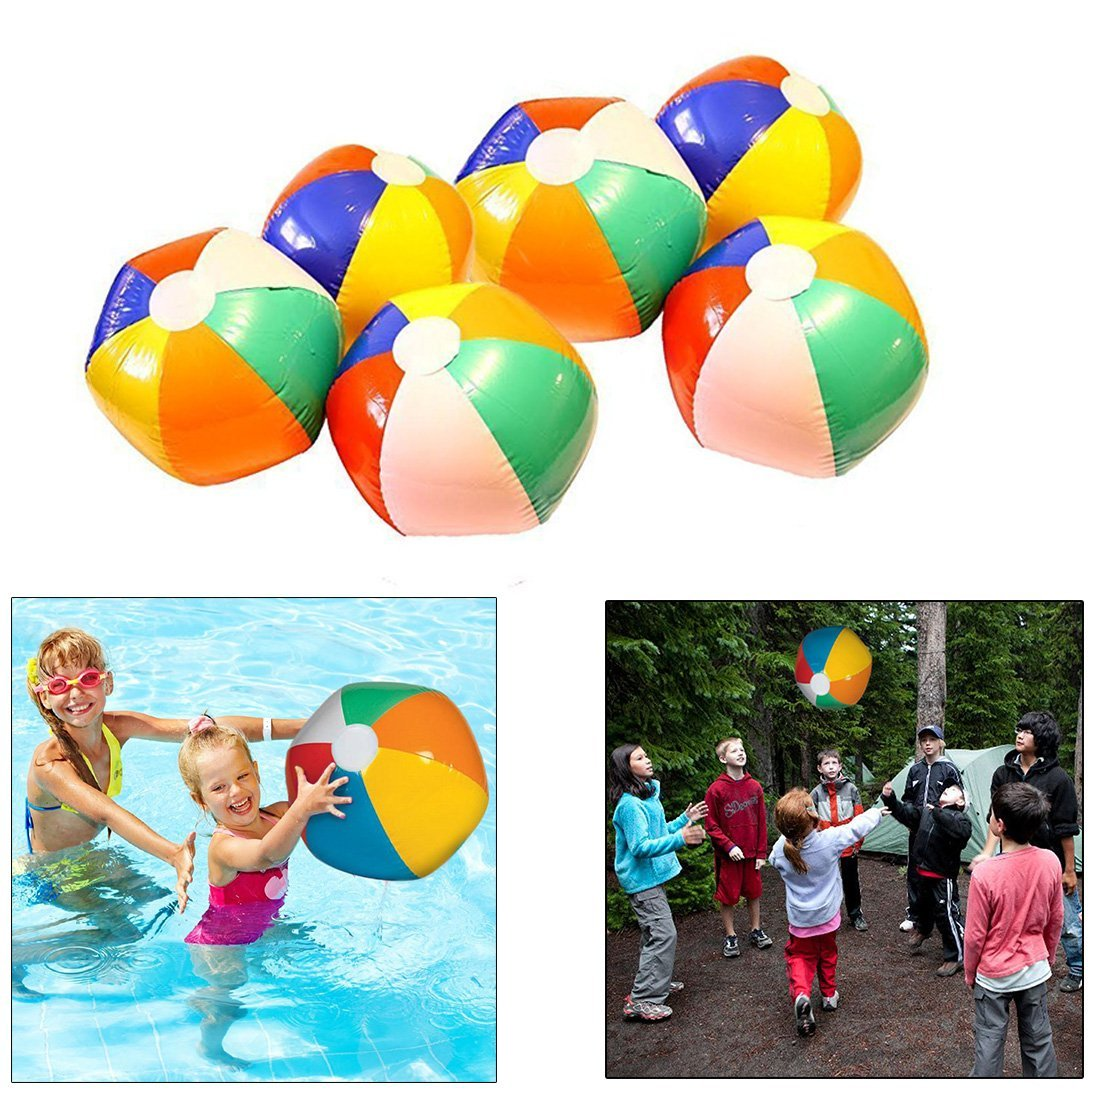 Inflatable Beach Balls - 12 Pack - Bright Rainbow Colored Pool Toys for Kids and Adults - By Dazzling Toys